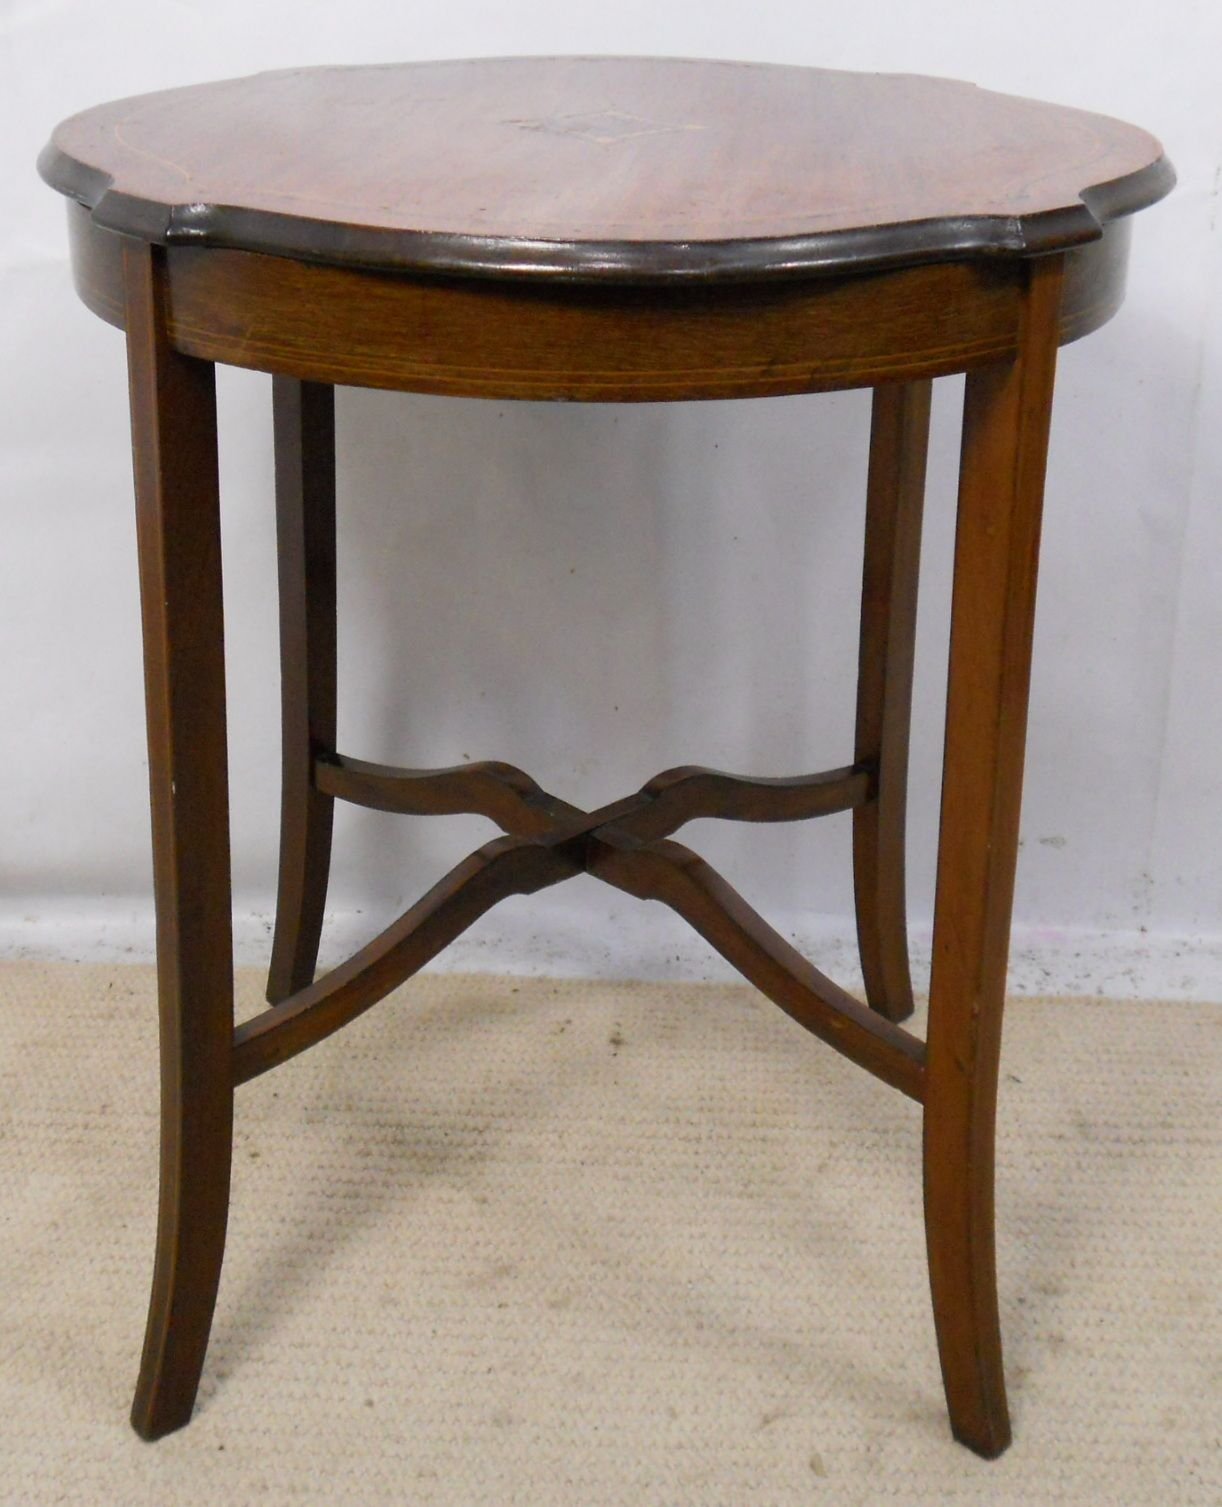 Occasional Tables: Edwardian Inlaid Mahogany Round Occasional Table